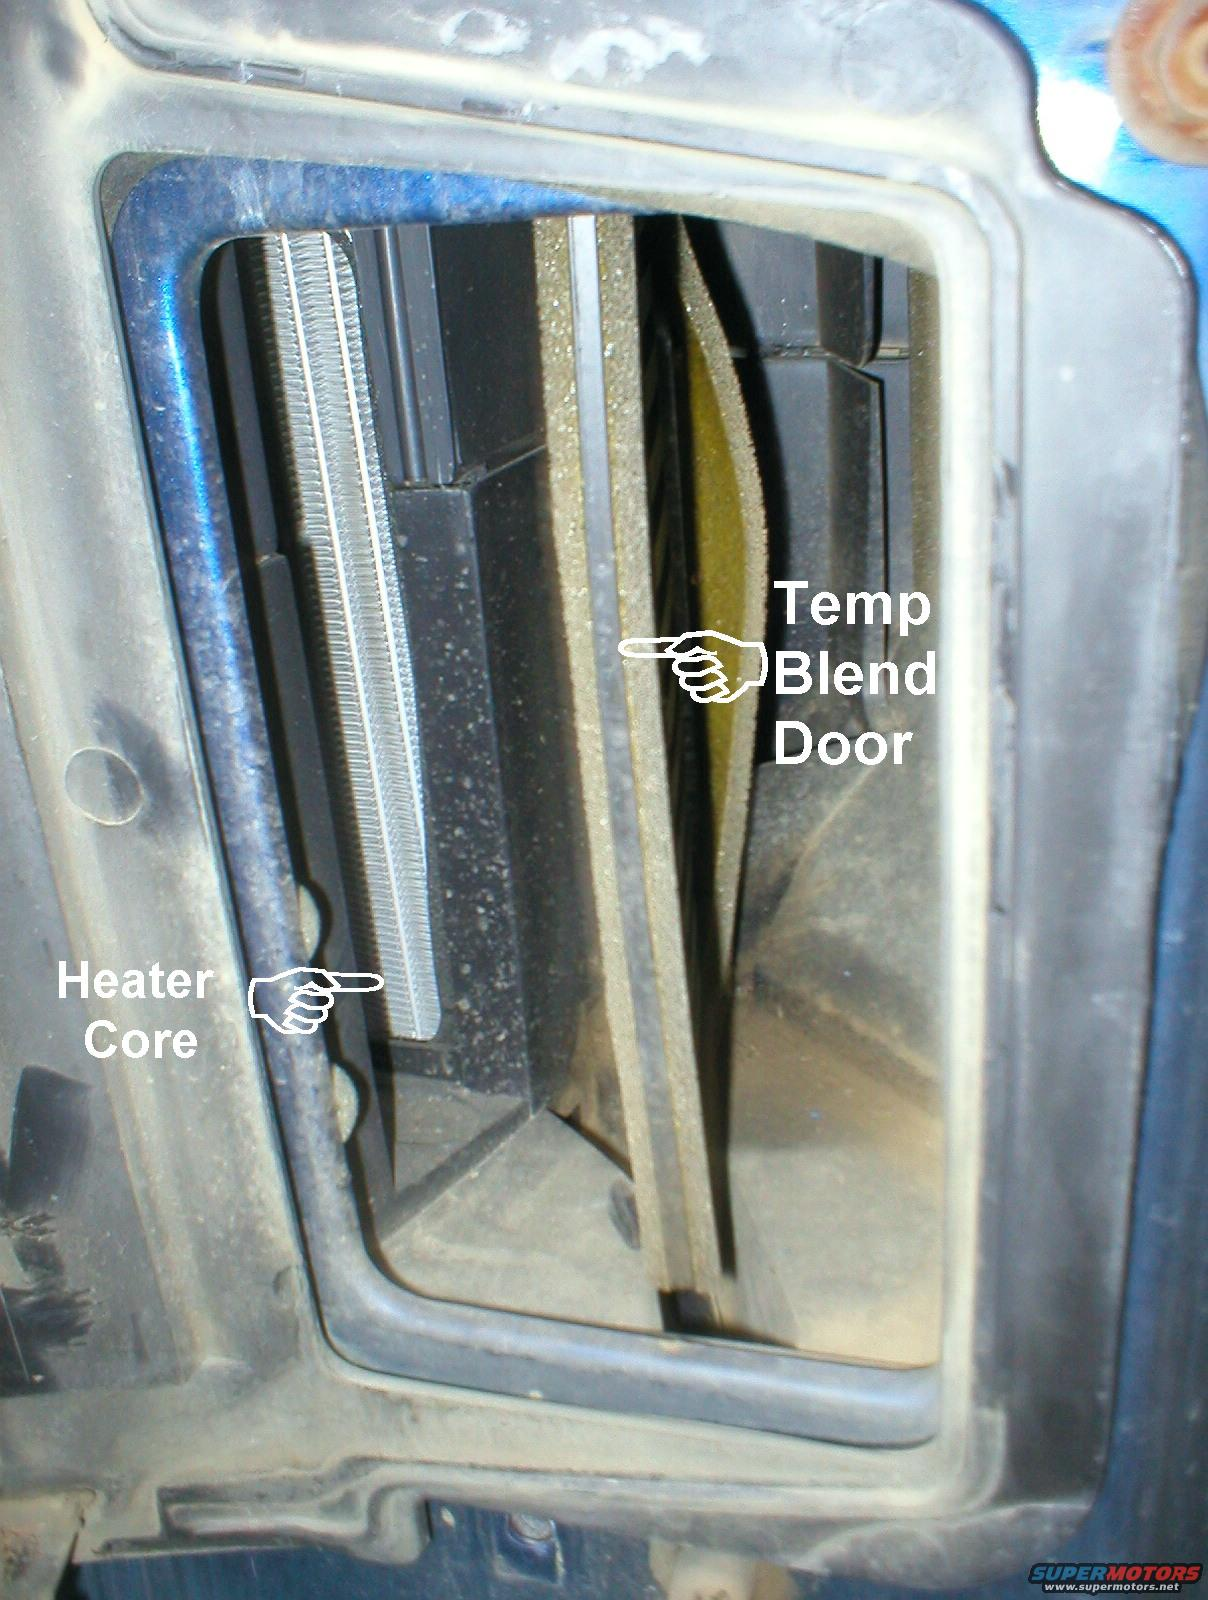 Water Going To The Heater Core And Air Is Blowing Thru It The Air Will Come Out Hot How Do You Know The Blend Door Is Working Have You Looked At It